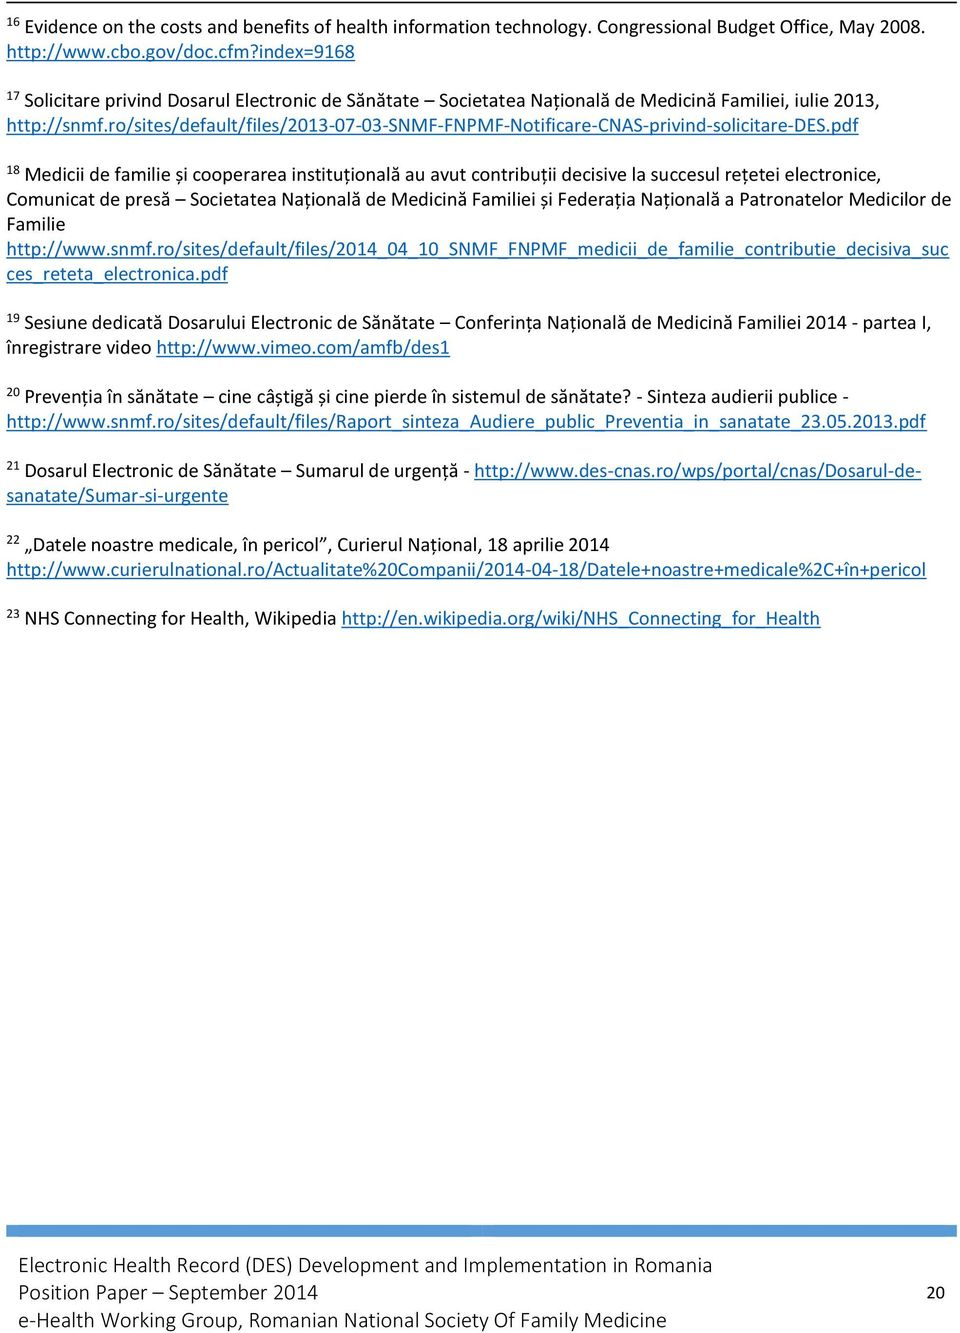 ro/sites/default/files/2013-07-03-snmf-fnpmf-notificare-cnas-privind-solicitare-des.